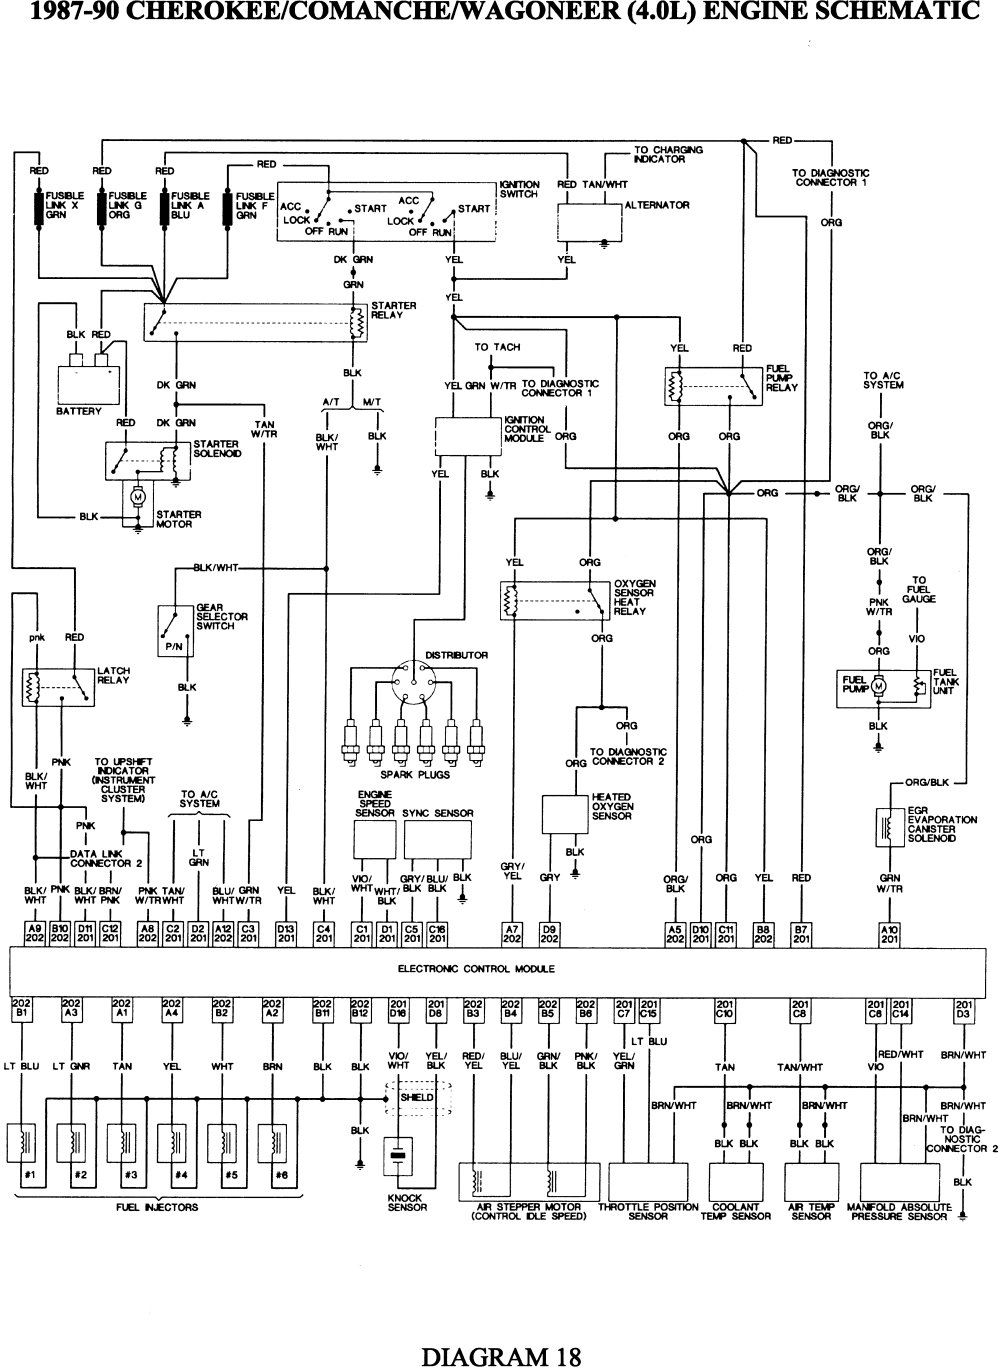 medium resolution of jeep transmission wiring diagram in 97 wrangler wiring diagramjeep transmission wiring diagram in 97 wrangler wiring